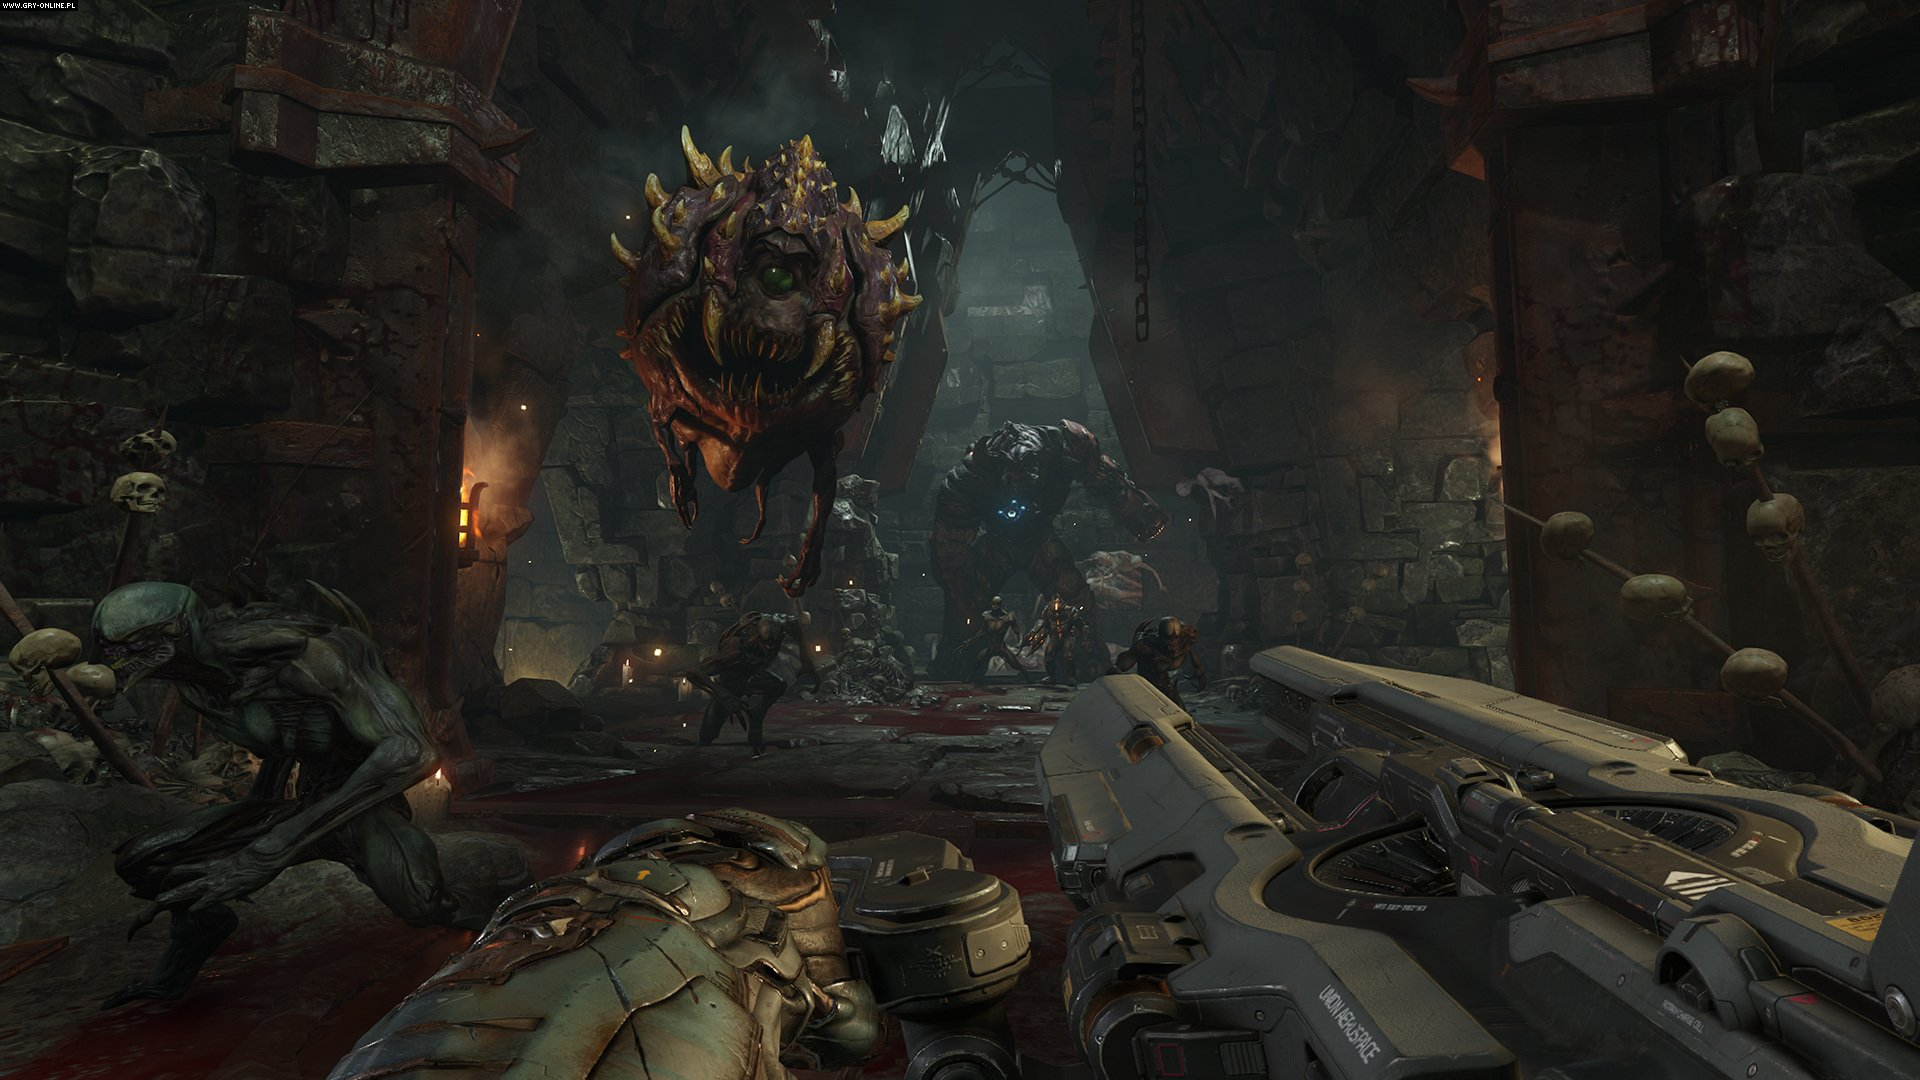 Doom PC, PS4, XONE Games Image 18/48, id Software, Bethesda Softworks